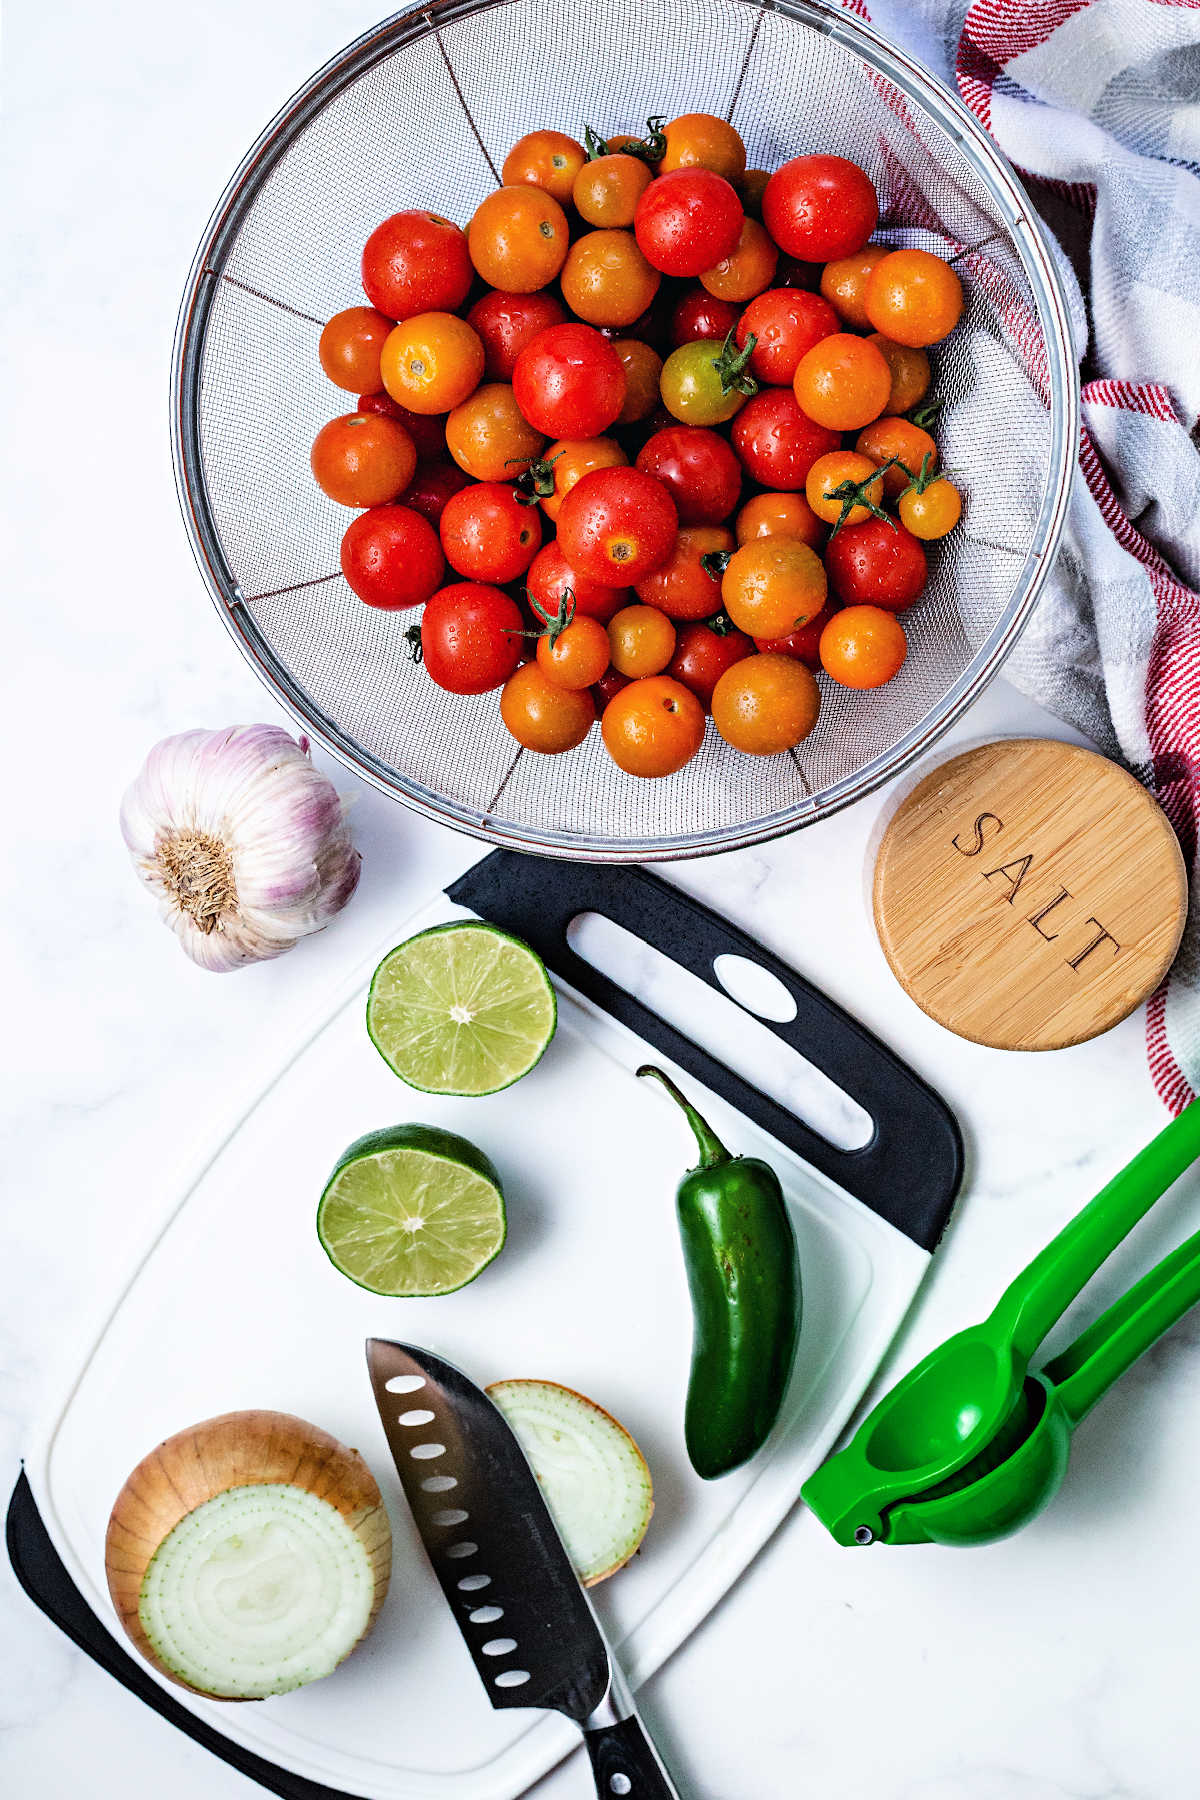 ingredients for cherry tomato salsa on a counter: cherry tomatoes in a mesh colander, garlic, white onion, jalapeno, lime, and a salt box.